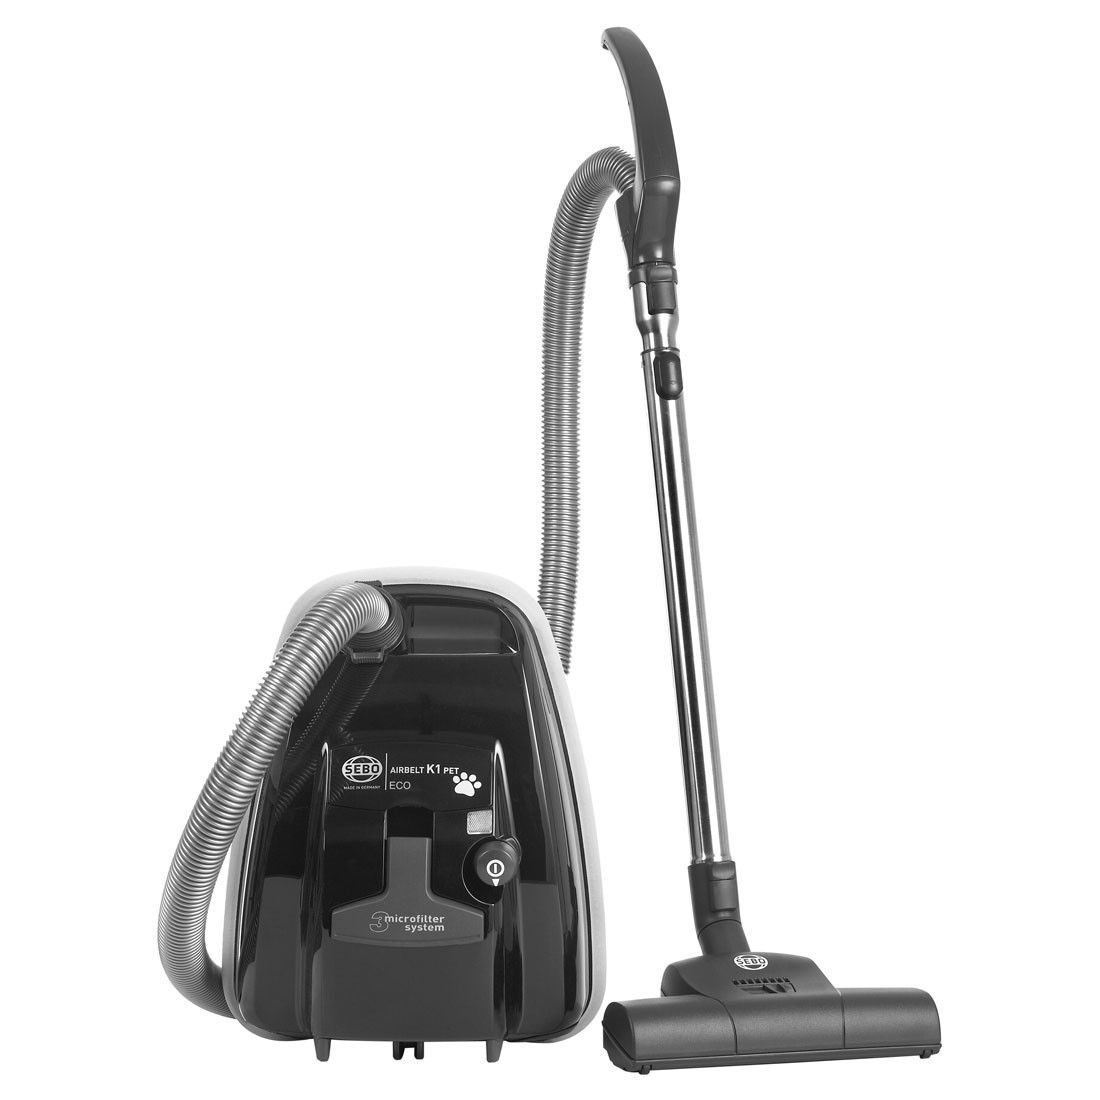 Sebo Airbelt K1 Pet ePower Vacuum Cleaner